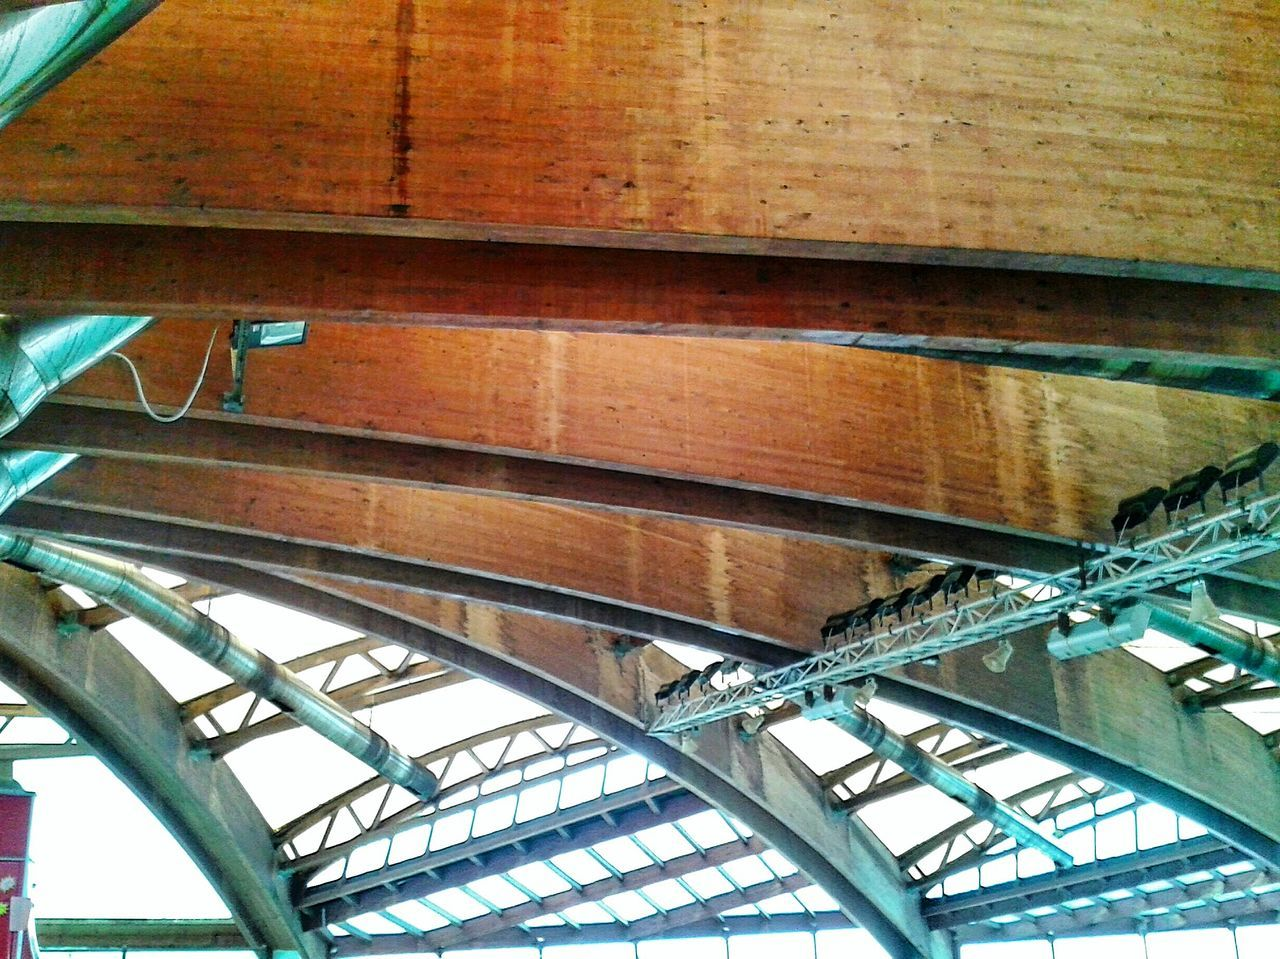 """ Metal Wood & Plexiglass Sliding Roof"". Built Structure Metallo Legno Tetti  / Piscina I Delfini di Genova-pra/ Fascia Di Rispetto / Architecture Copertura Lines & Curves Mobile Photography S3mini Camerazoomfx in HDR shooting mode: Exposure Bracketing Eyeemfilter F3"